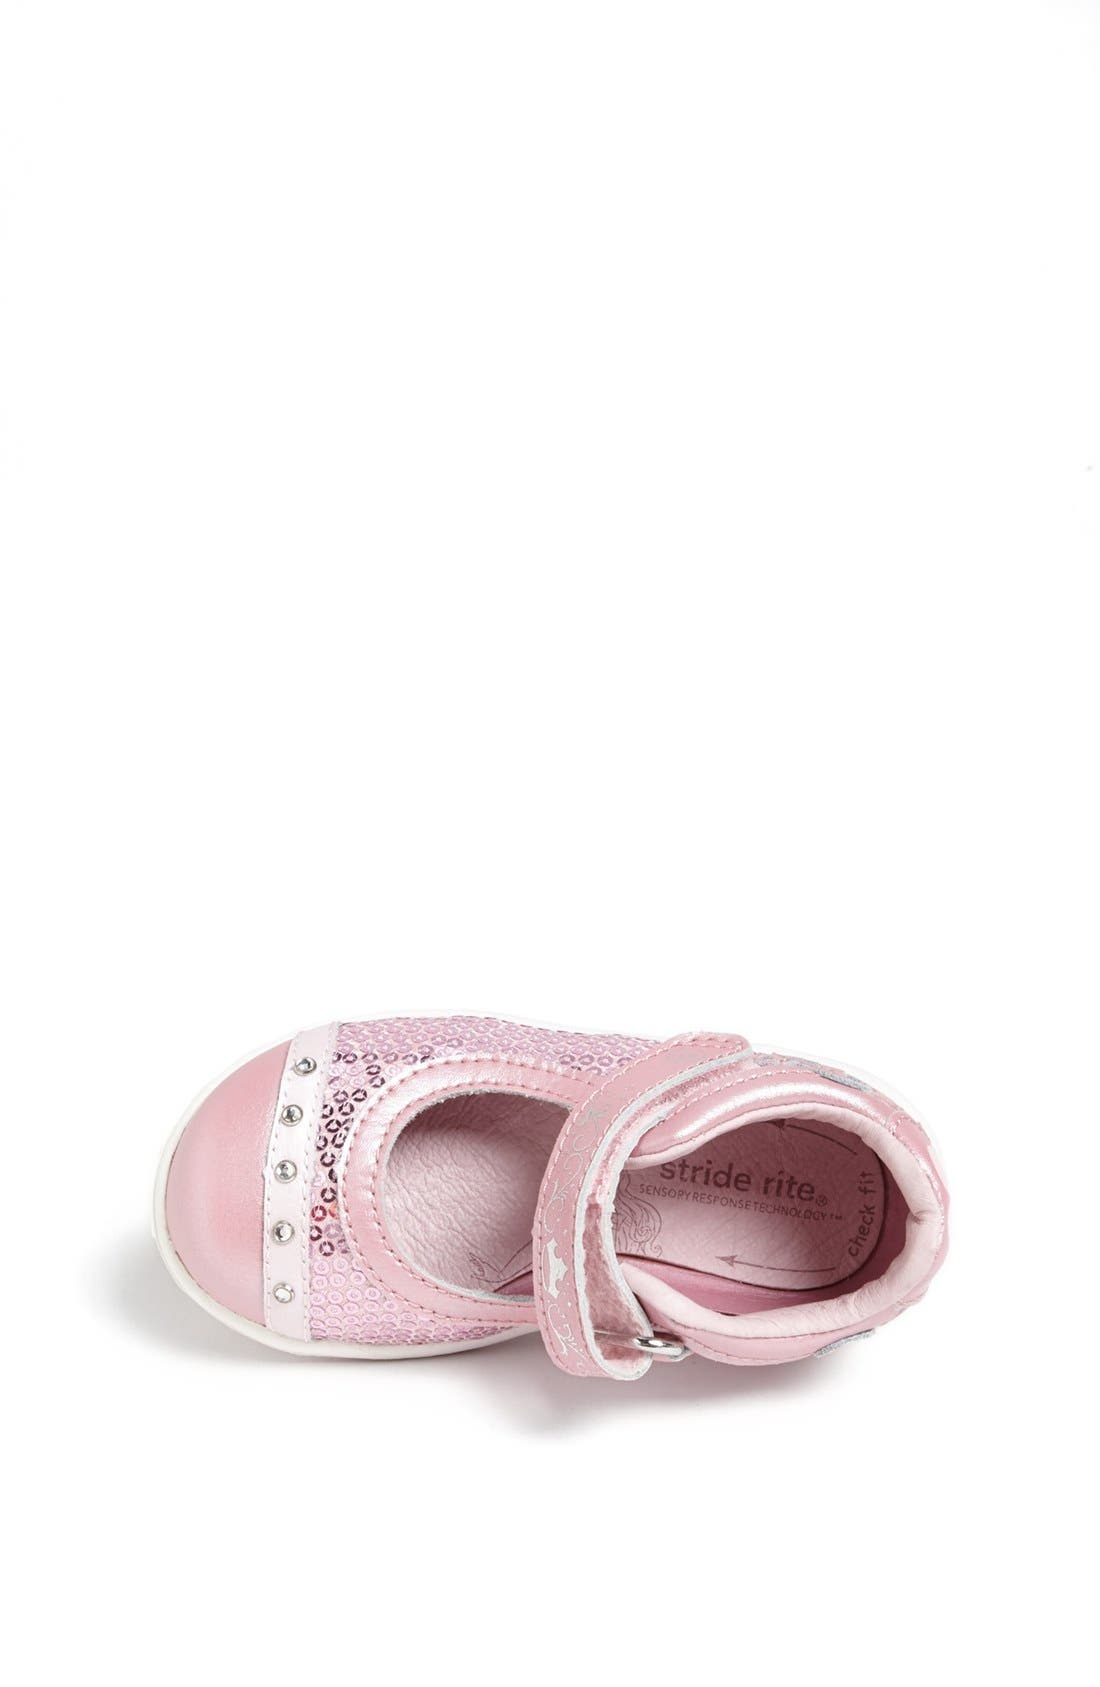 STRIDE RITE,                             'SRT Aurora' Mary Jane Sneaker,                             Alternate thumbnail 3, color,                             650